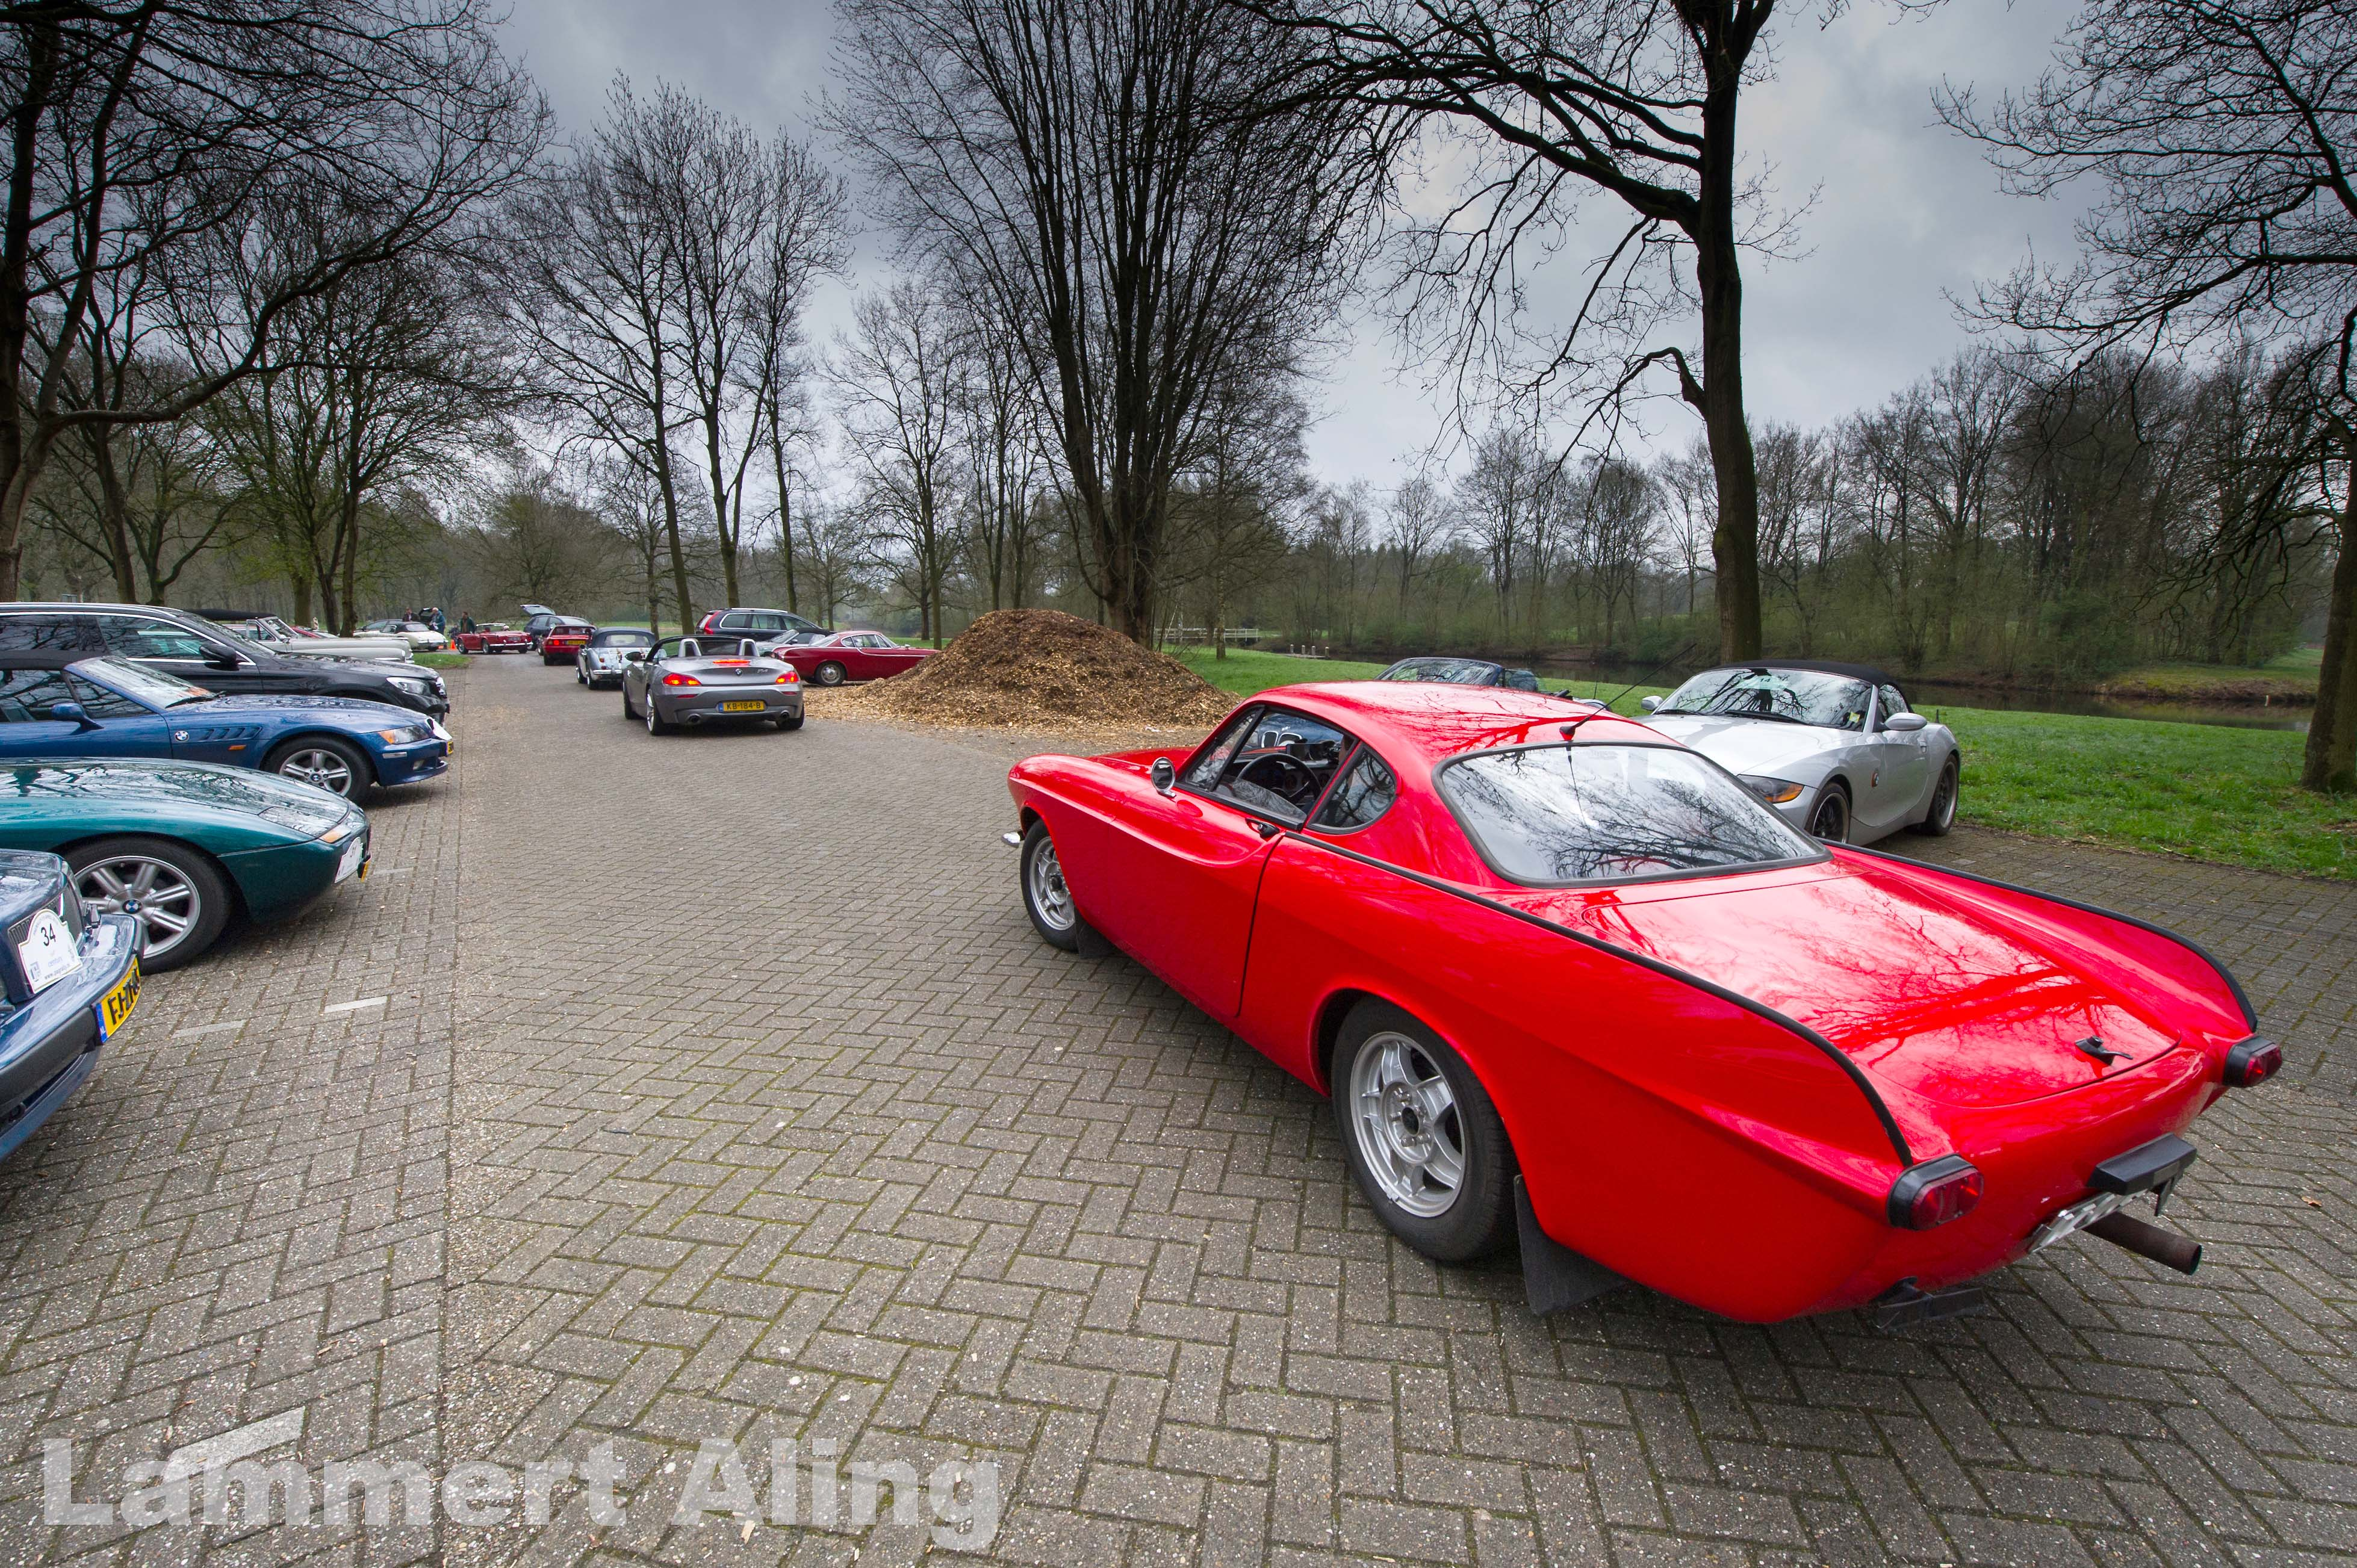 Pagrally2018-4467